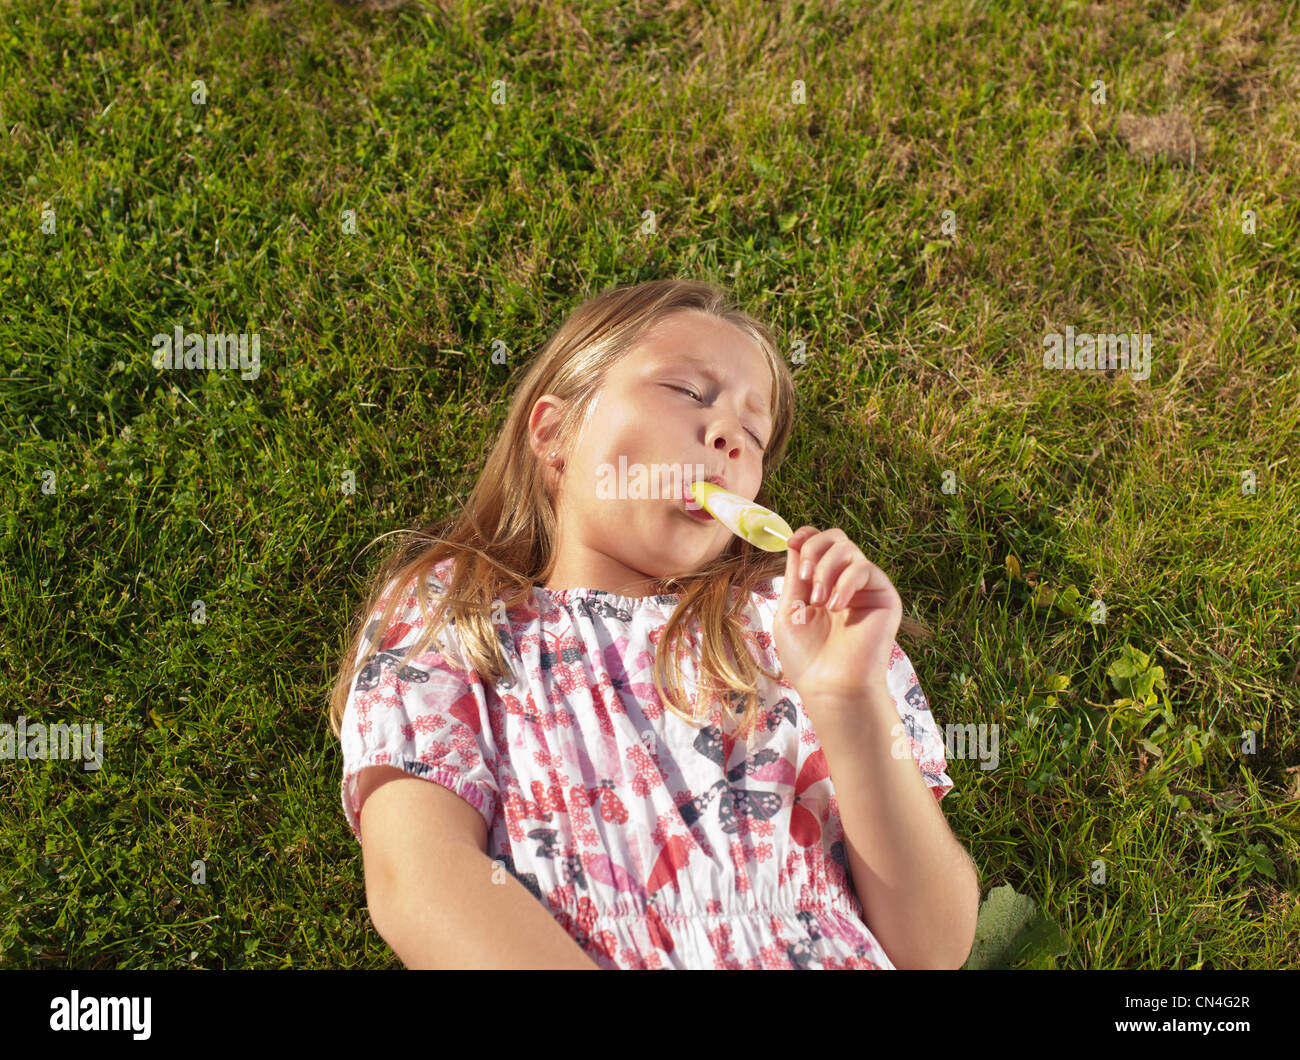 Girl enjoying ice lolly on lawn Stock Photo